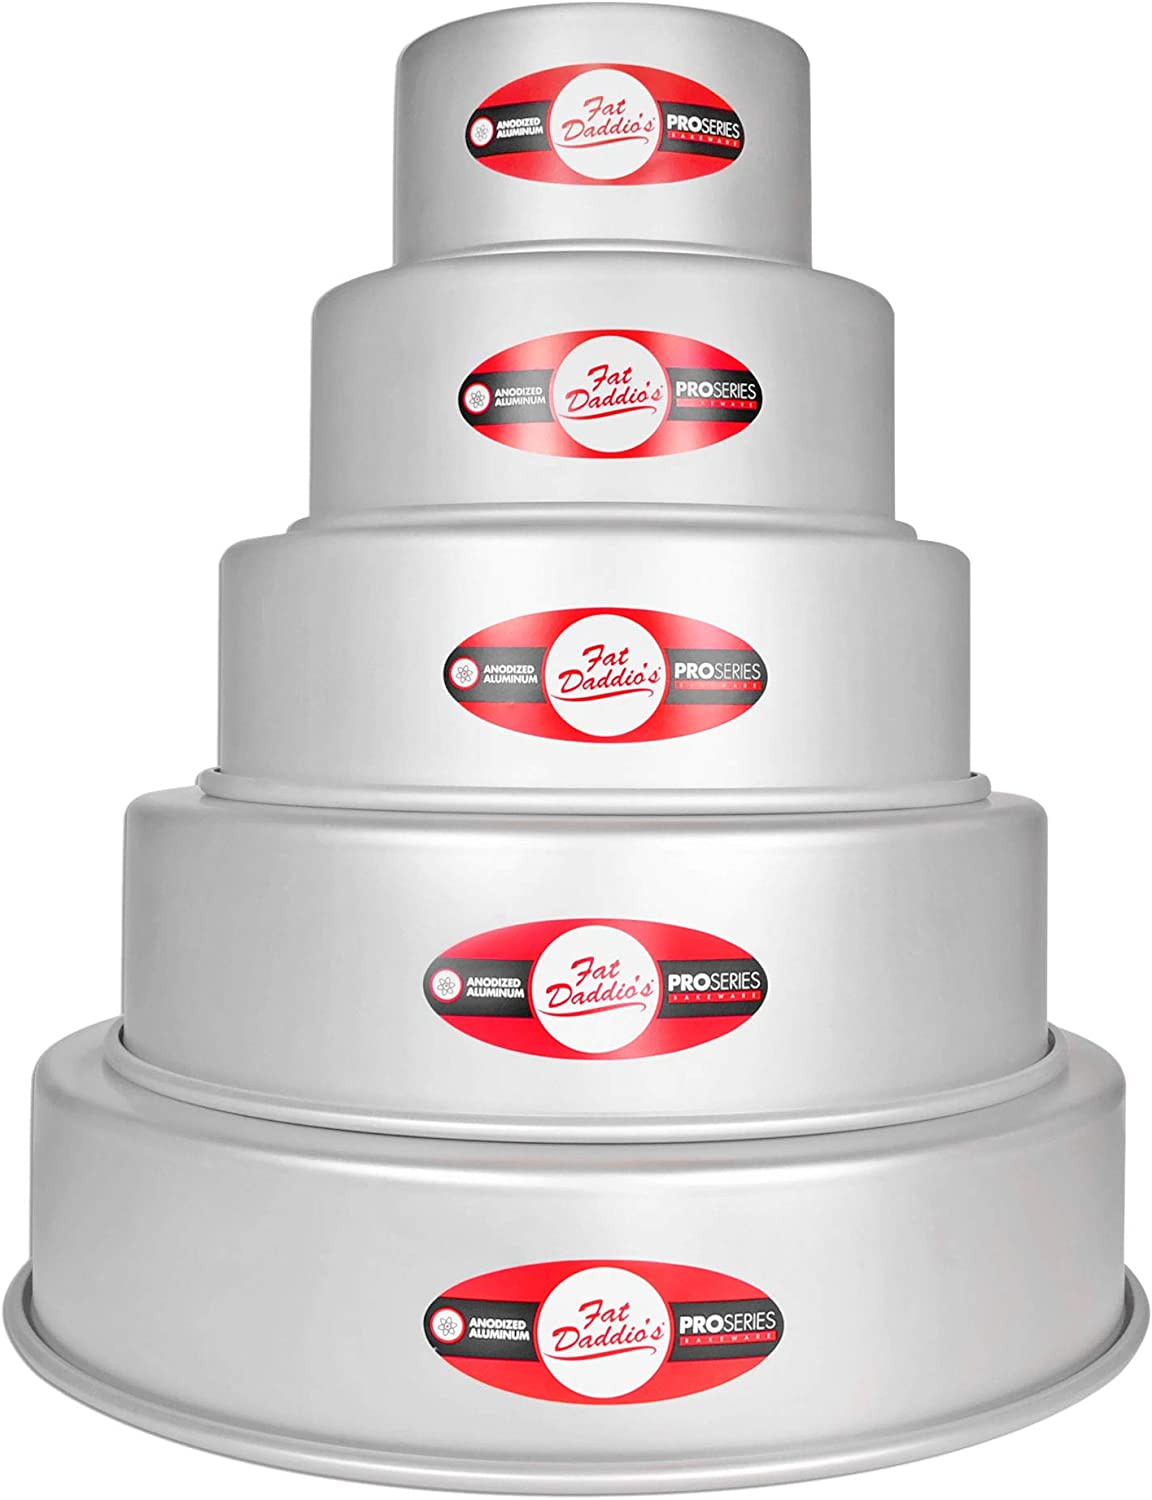 7 9 Fat Daddios 5 Tier 3 5 11 and 13 Round Cake Pan Set